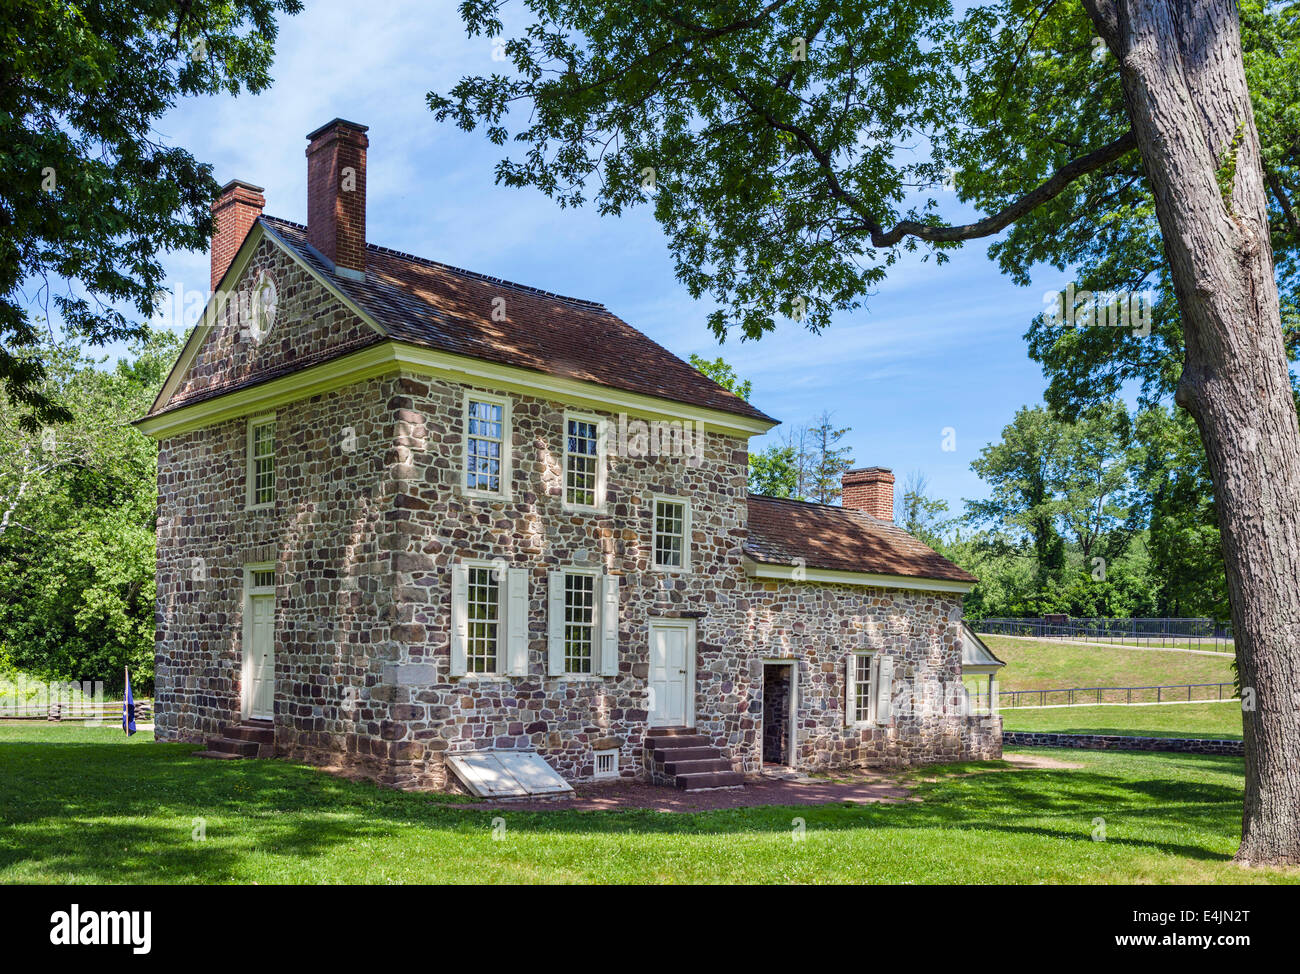 George Washington's Headquarters and home in winter of 1777/78,  Valley Forge National Historical Park, Pennsylvania, - Stock Image